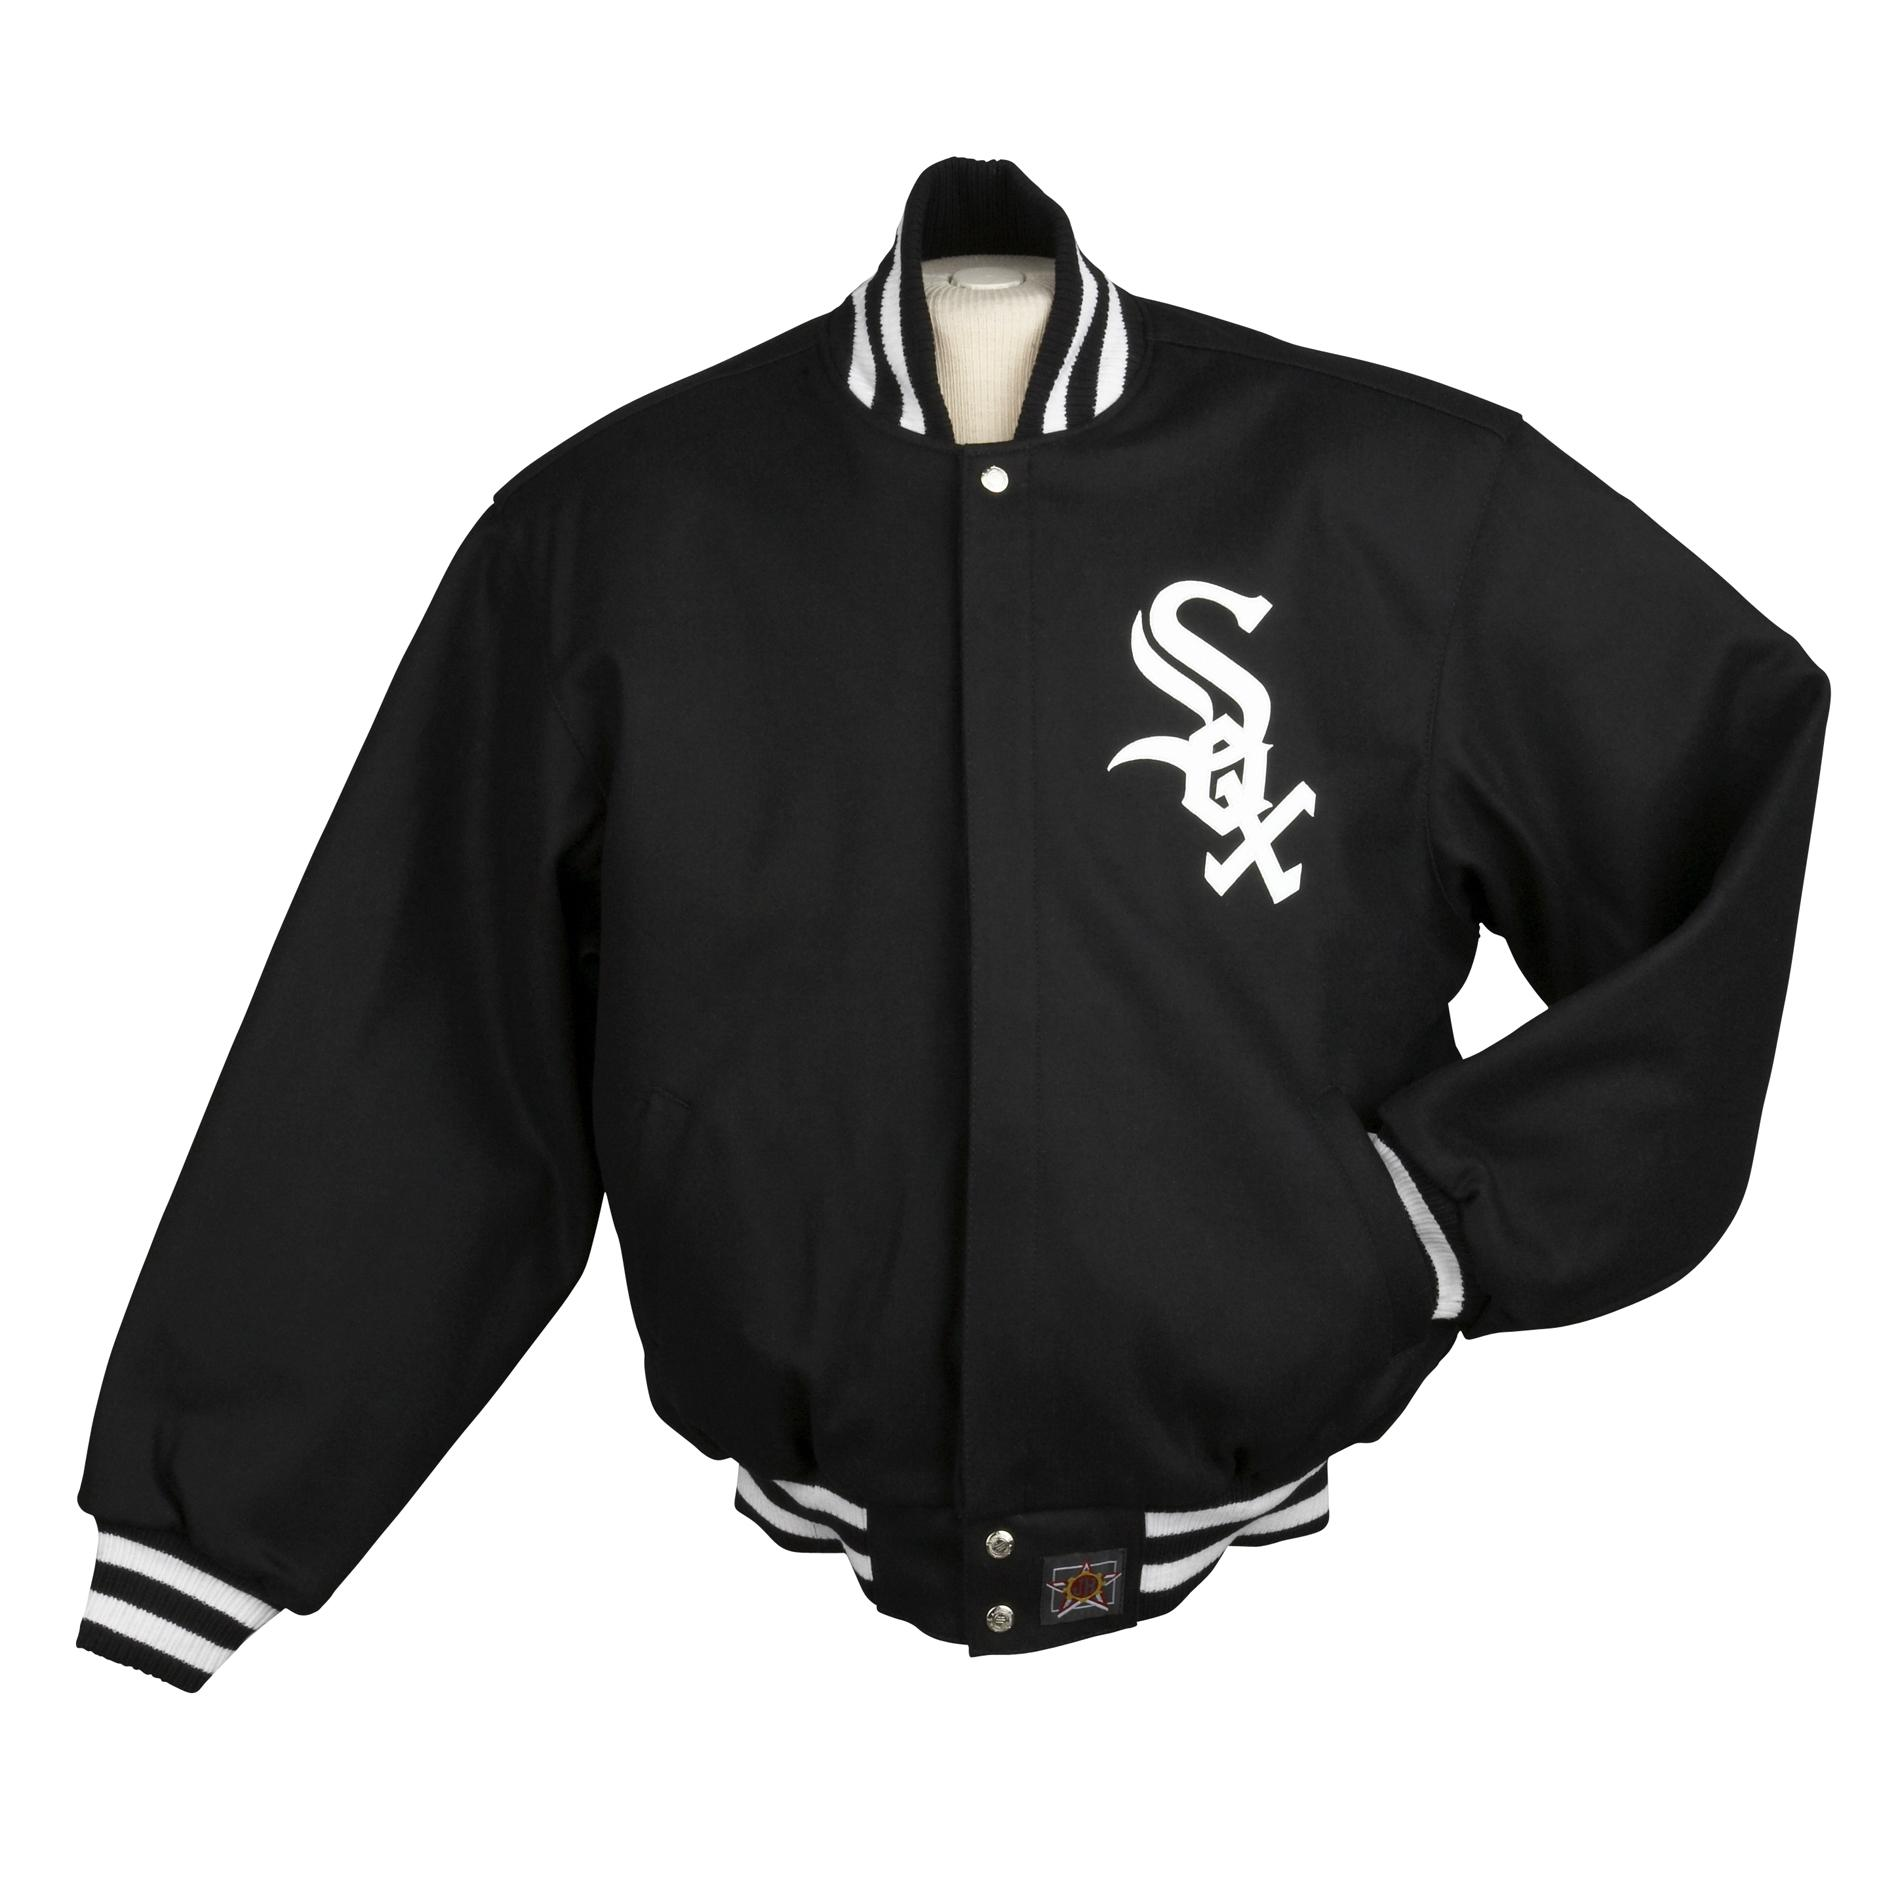 Jh Designs Men S Chicago White Sox Domestic Wool Jacket